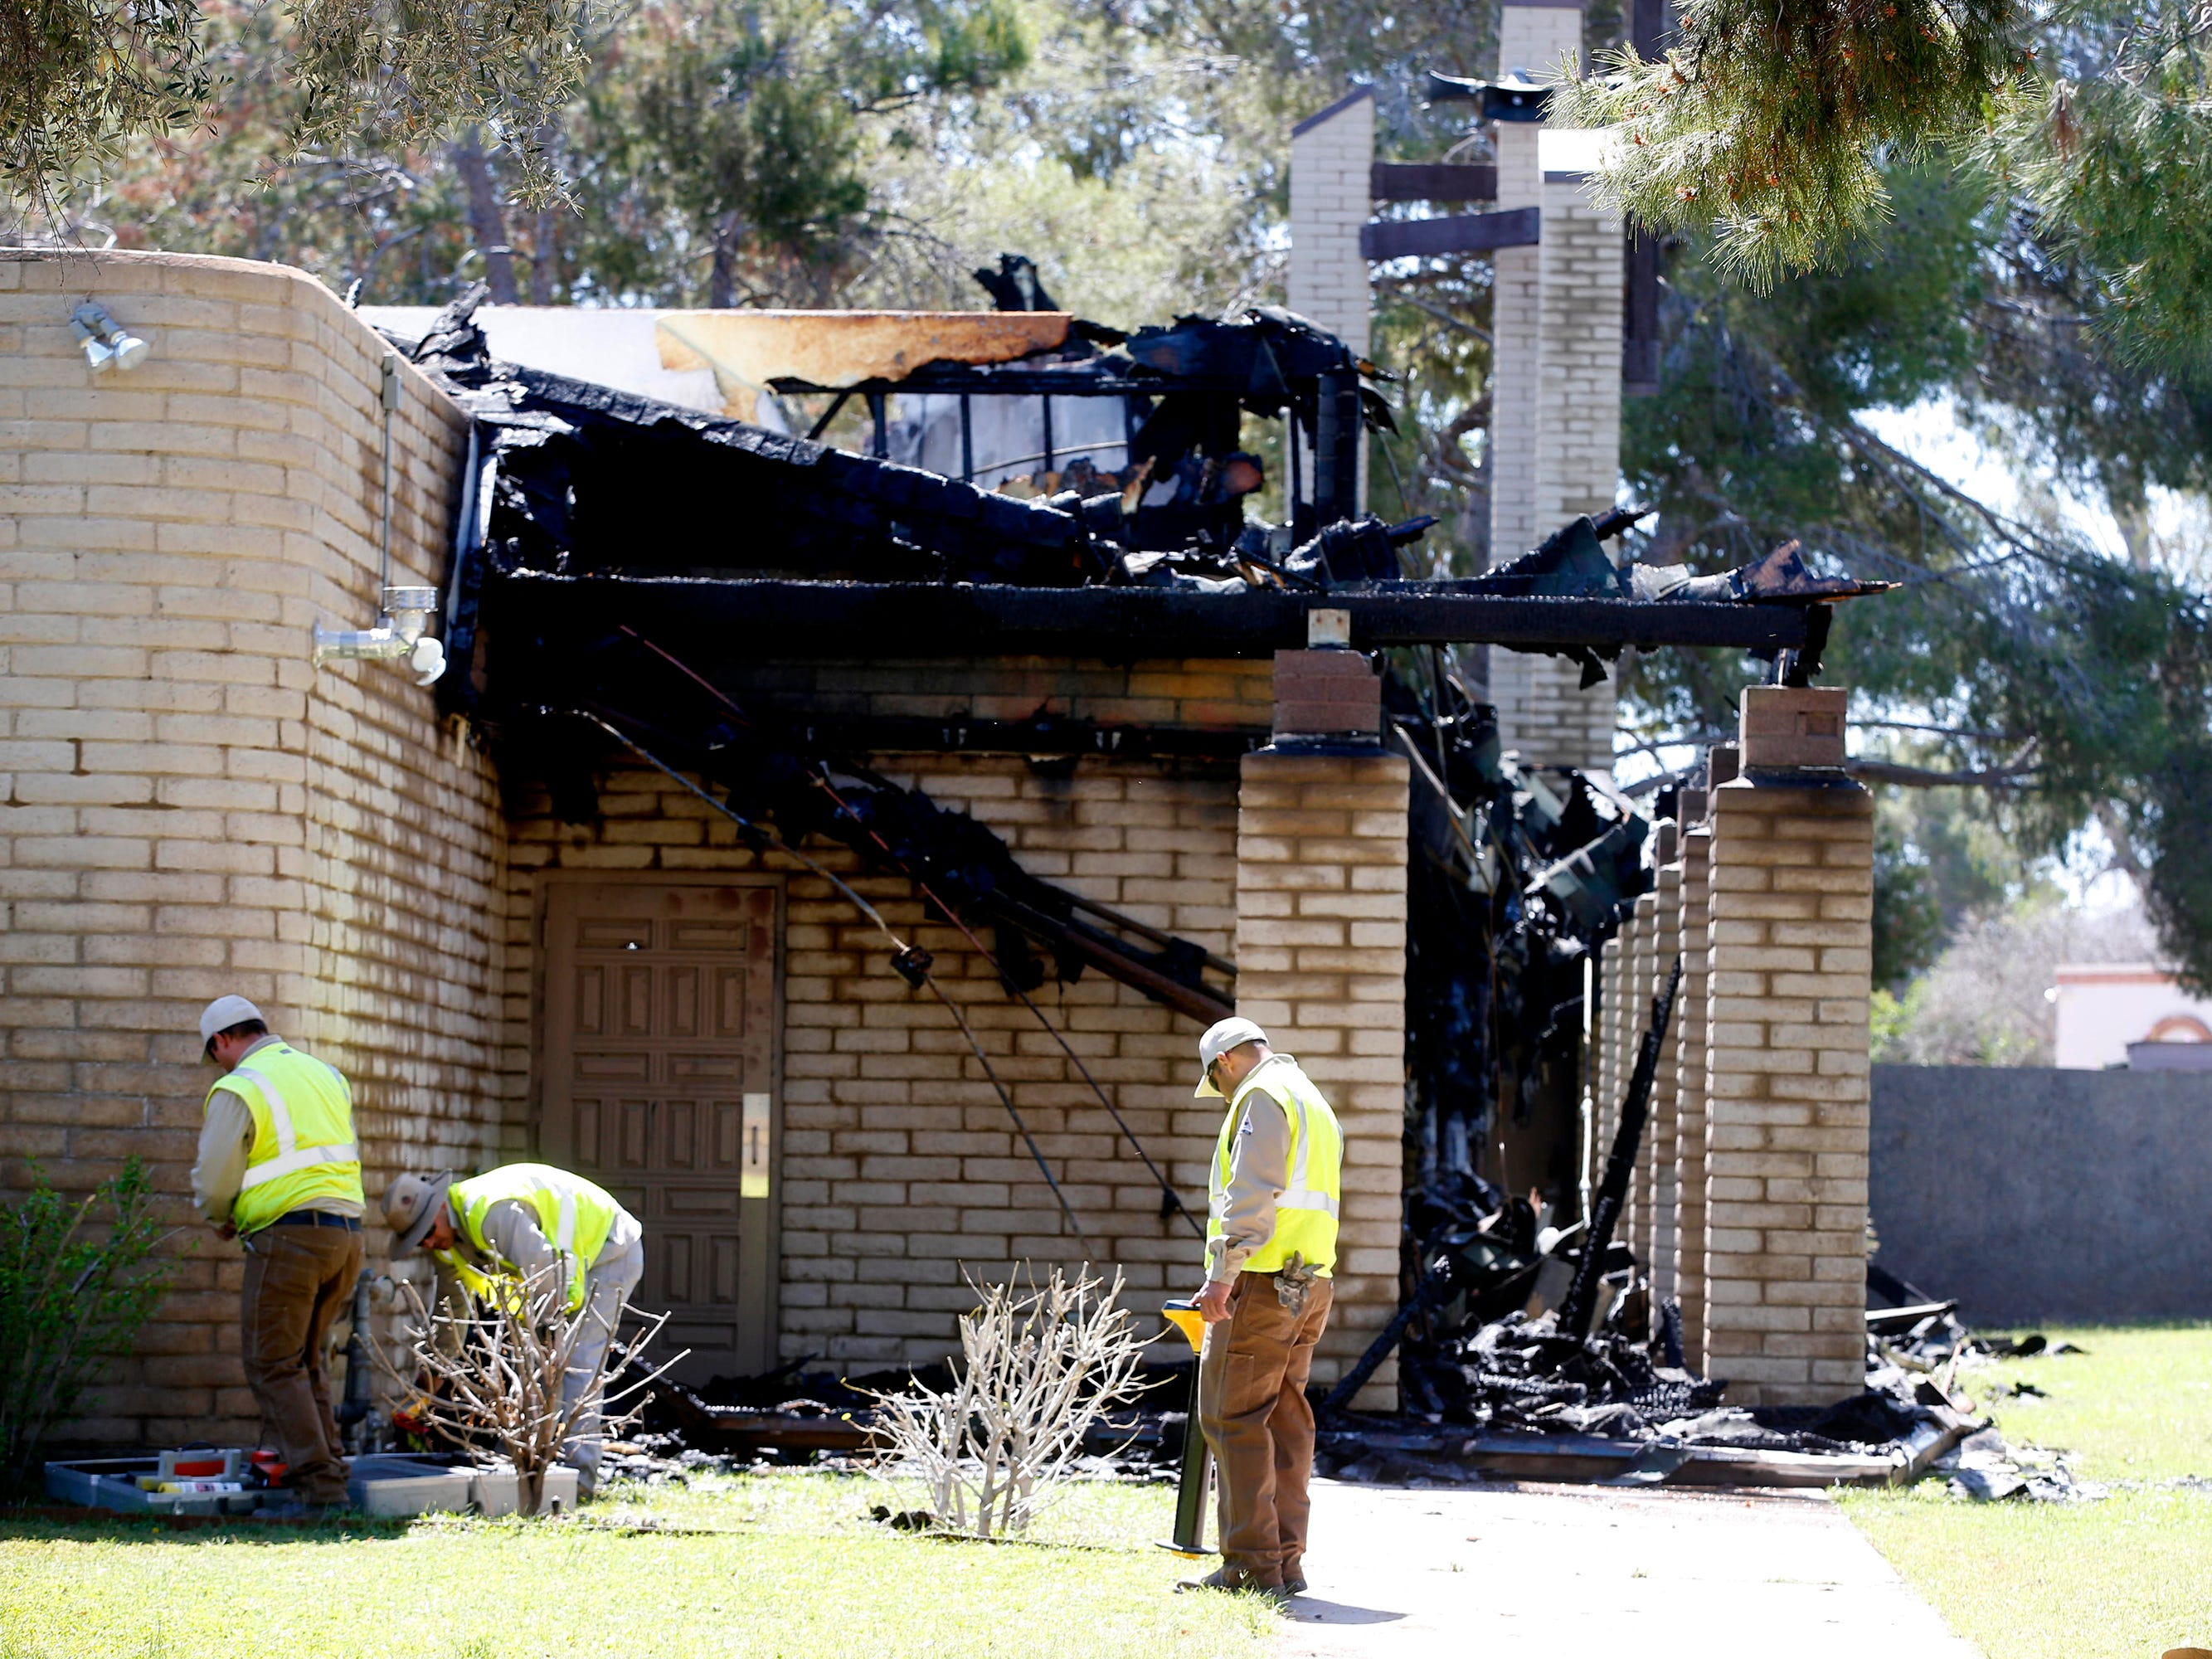 Crews work the scene at St. Joseph Catholic Church in Phoenix on May 1, 2019, after a fire destroyed most of the church.